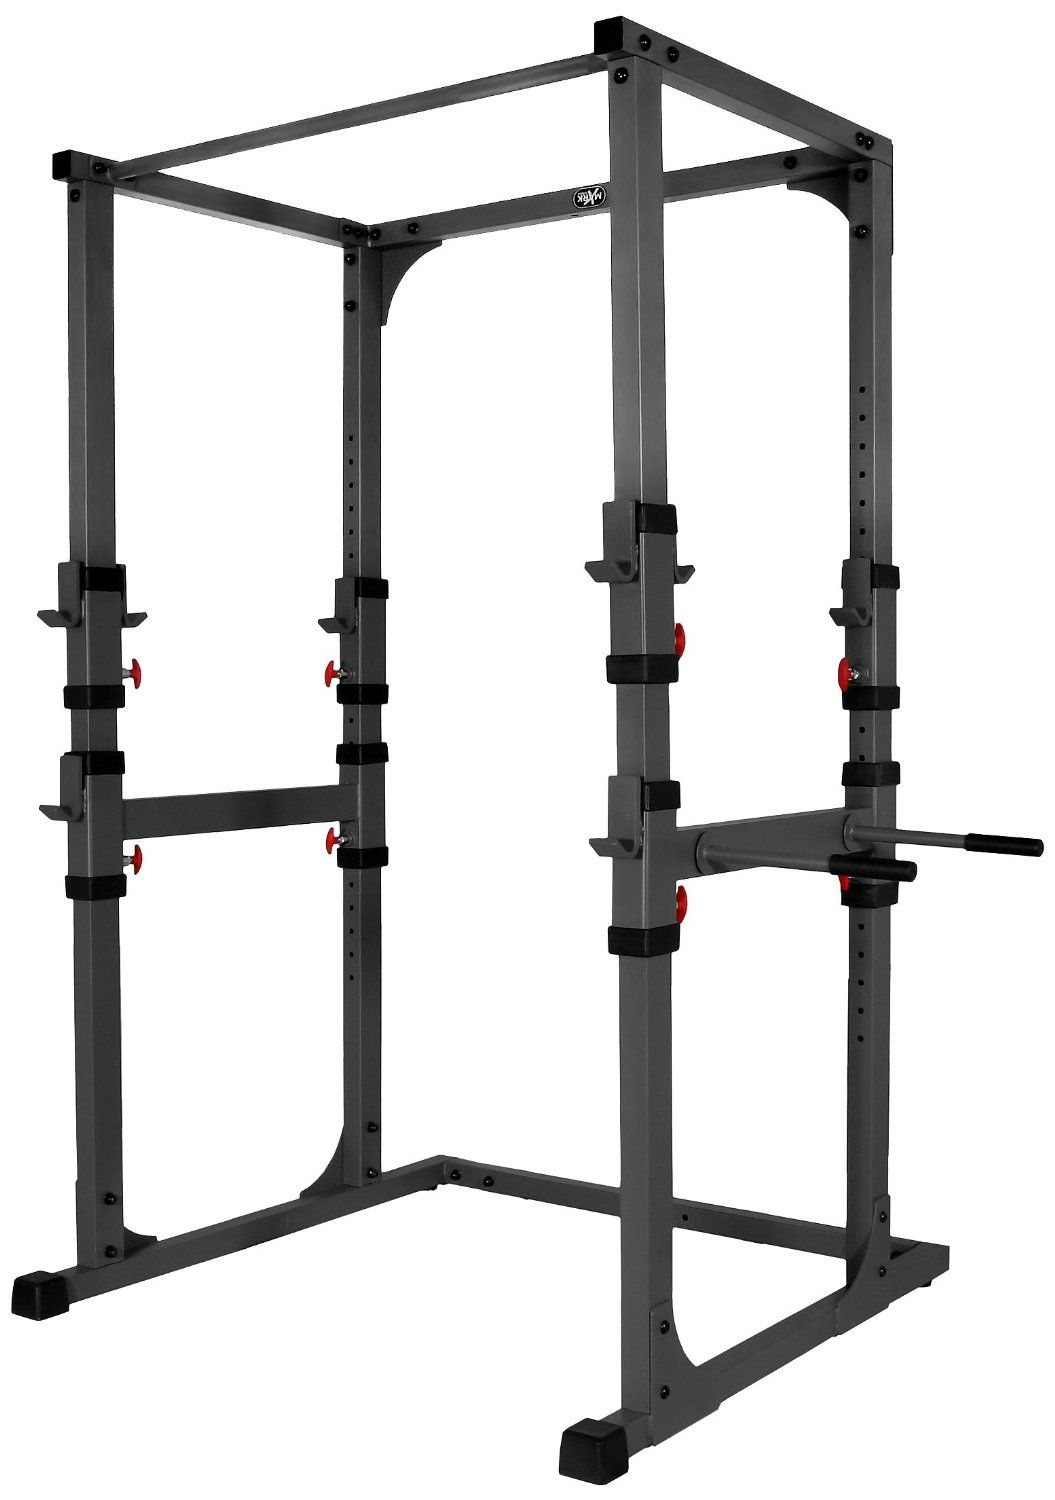 A power rack is in my opinion the best choice for being